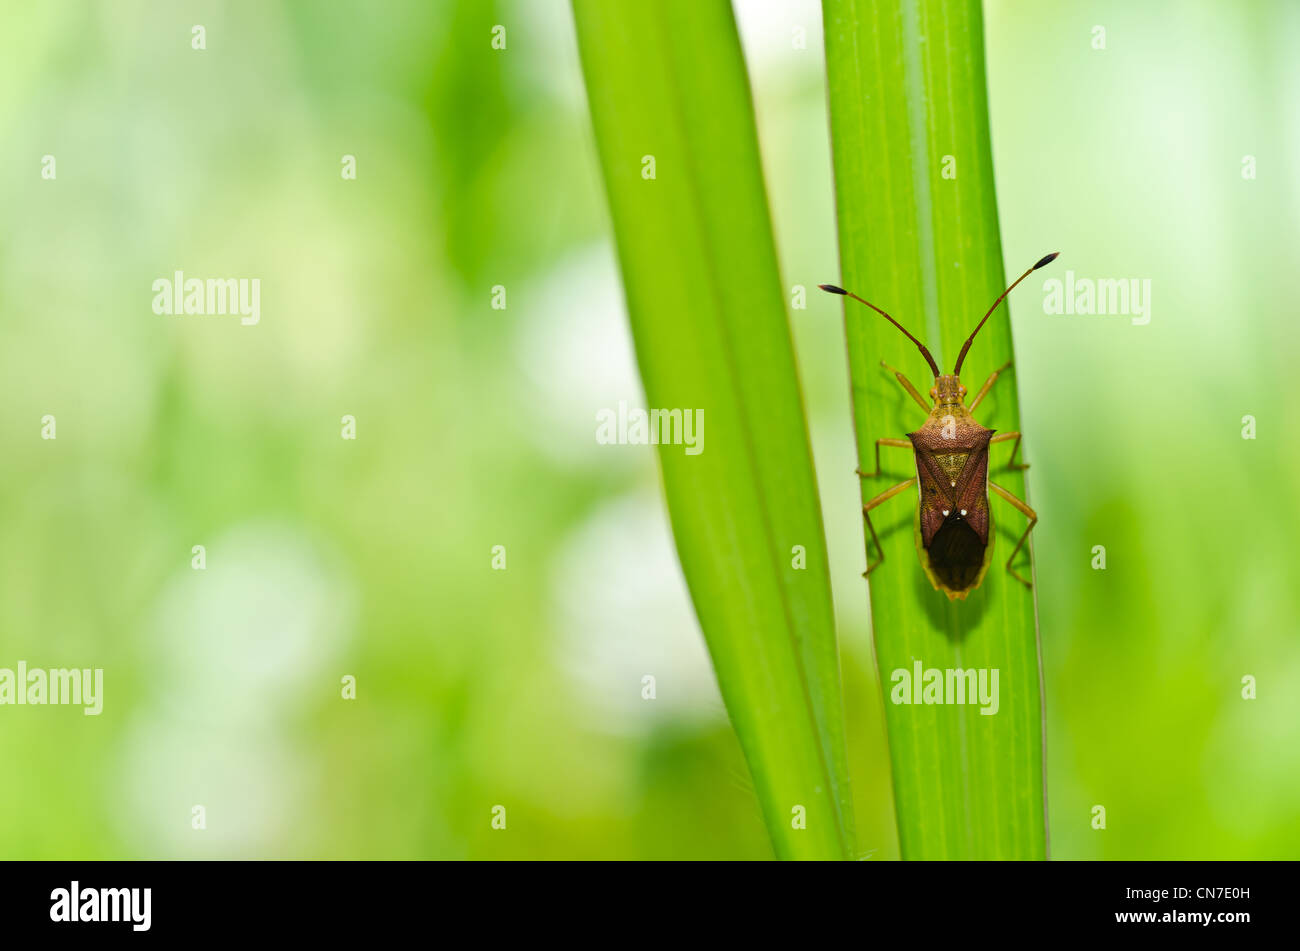 hemiptera in green nature or in the garden - Stock Image